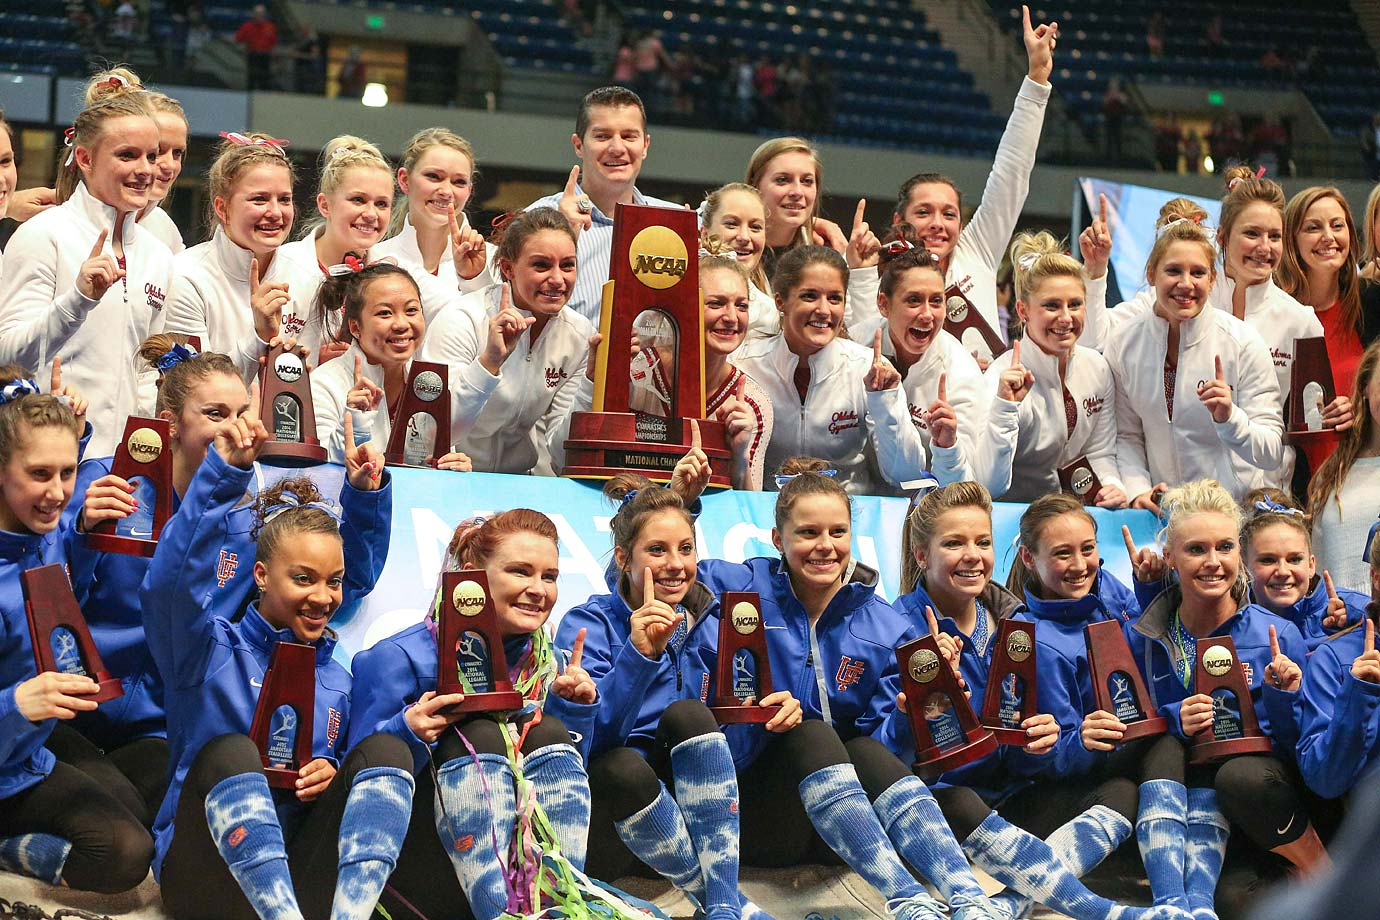 The members of Oklahoma and Florida's women's gymnastics teams pose together after being declared co-champions, the first time that's happened in the sport's collegiate history.